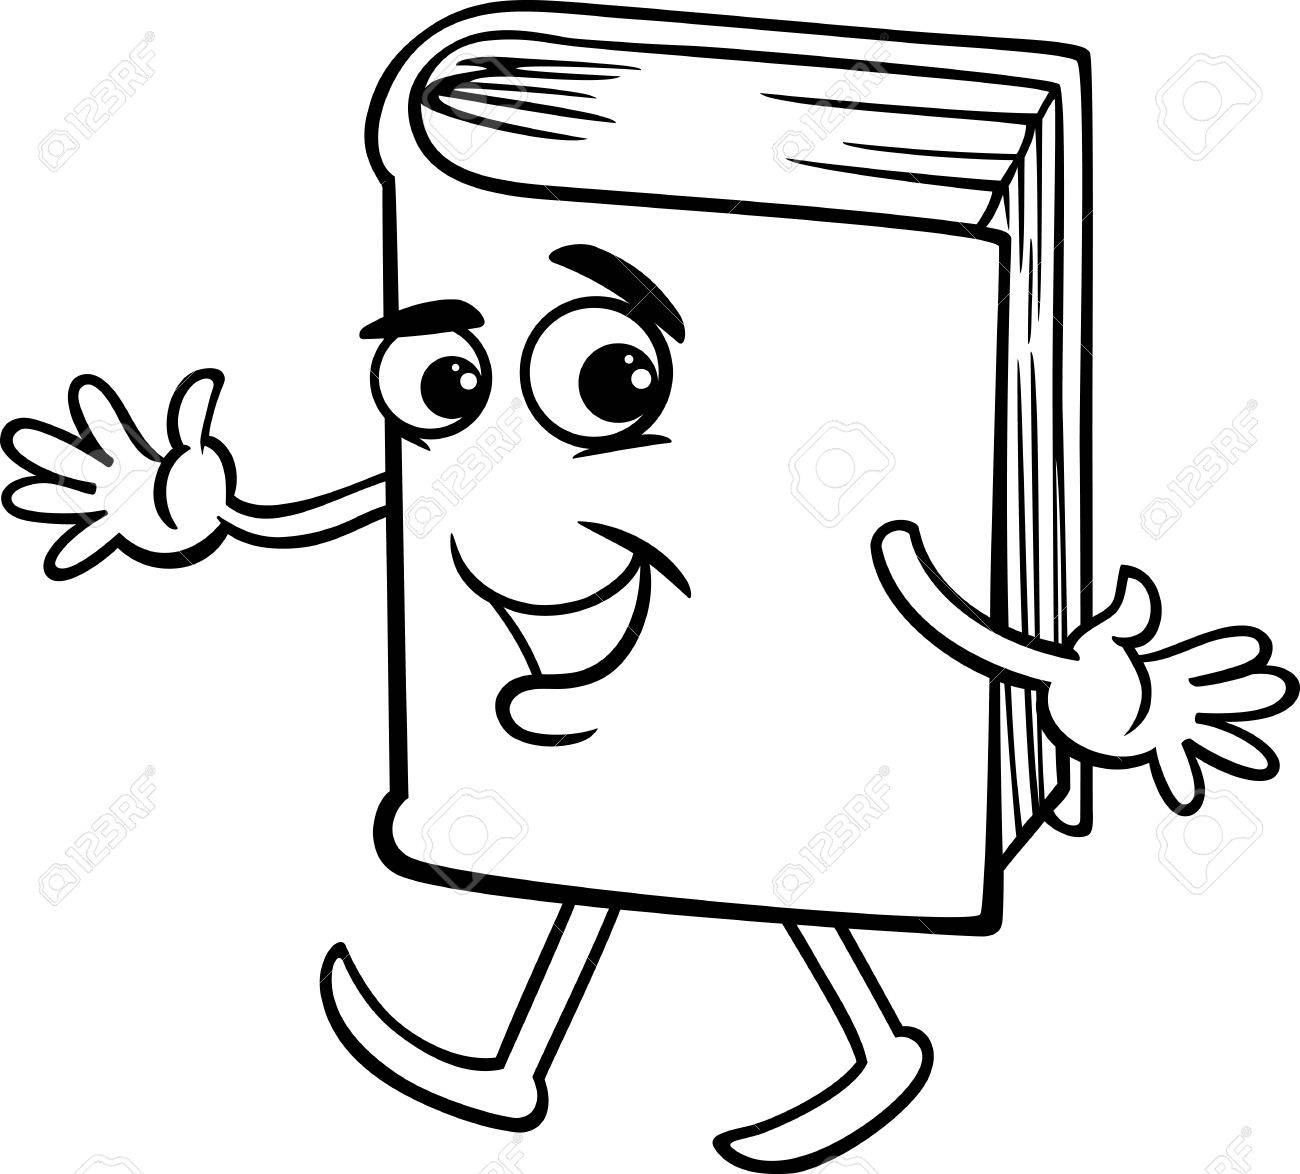 Black and White Cartoon Illustration of Funny Book Character...